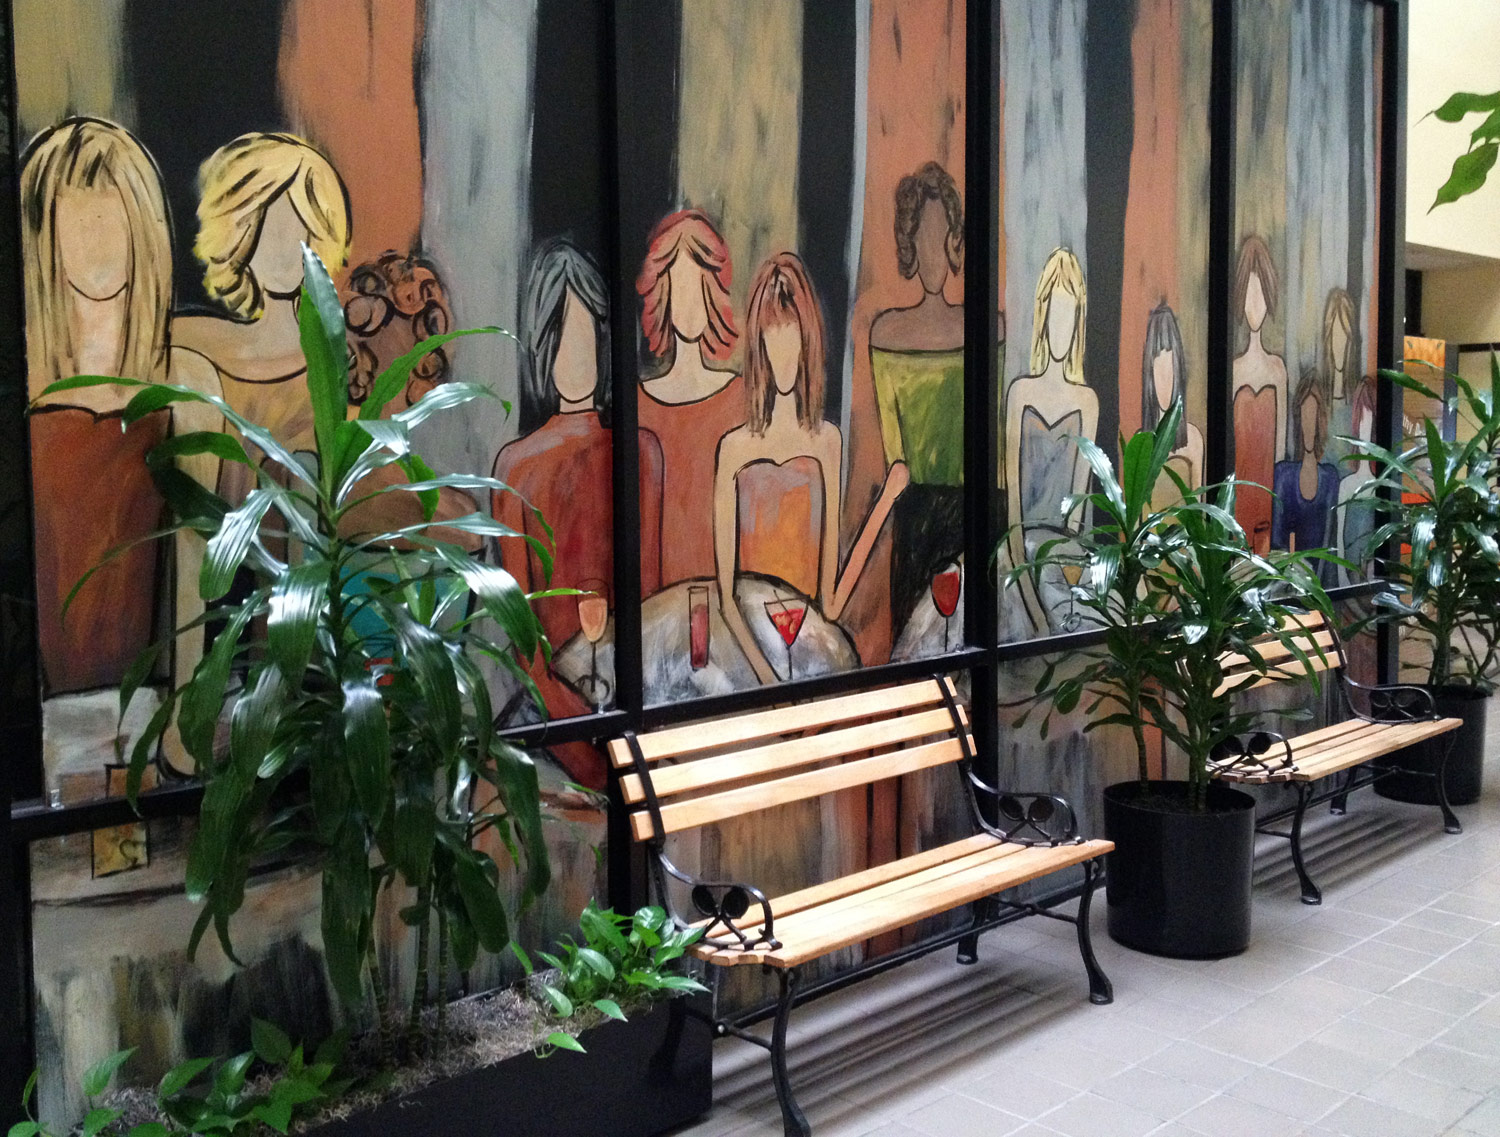 downtown-greensboro-business-art-commission-by-tracey-marshall-IMG_9628.jpg